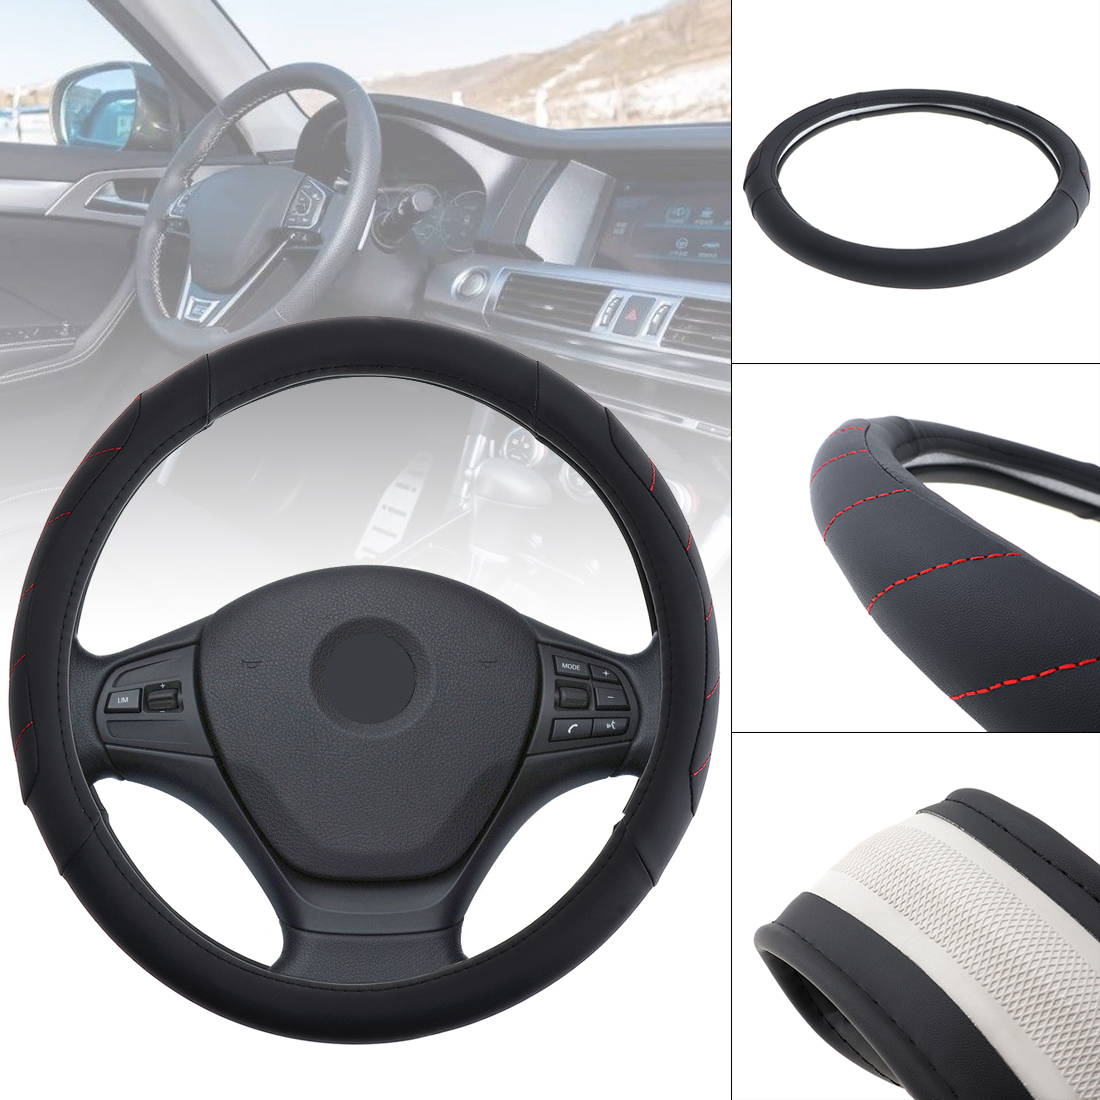 38 CM Leather Car Steering Wheel Cover Soft Anti-Slip Steering Cover steering-wheel cubre funda volante coprivolante